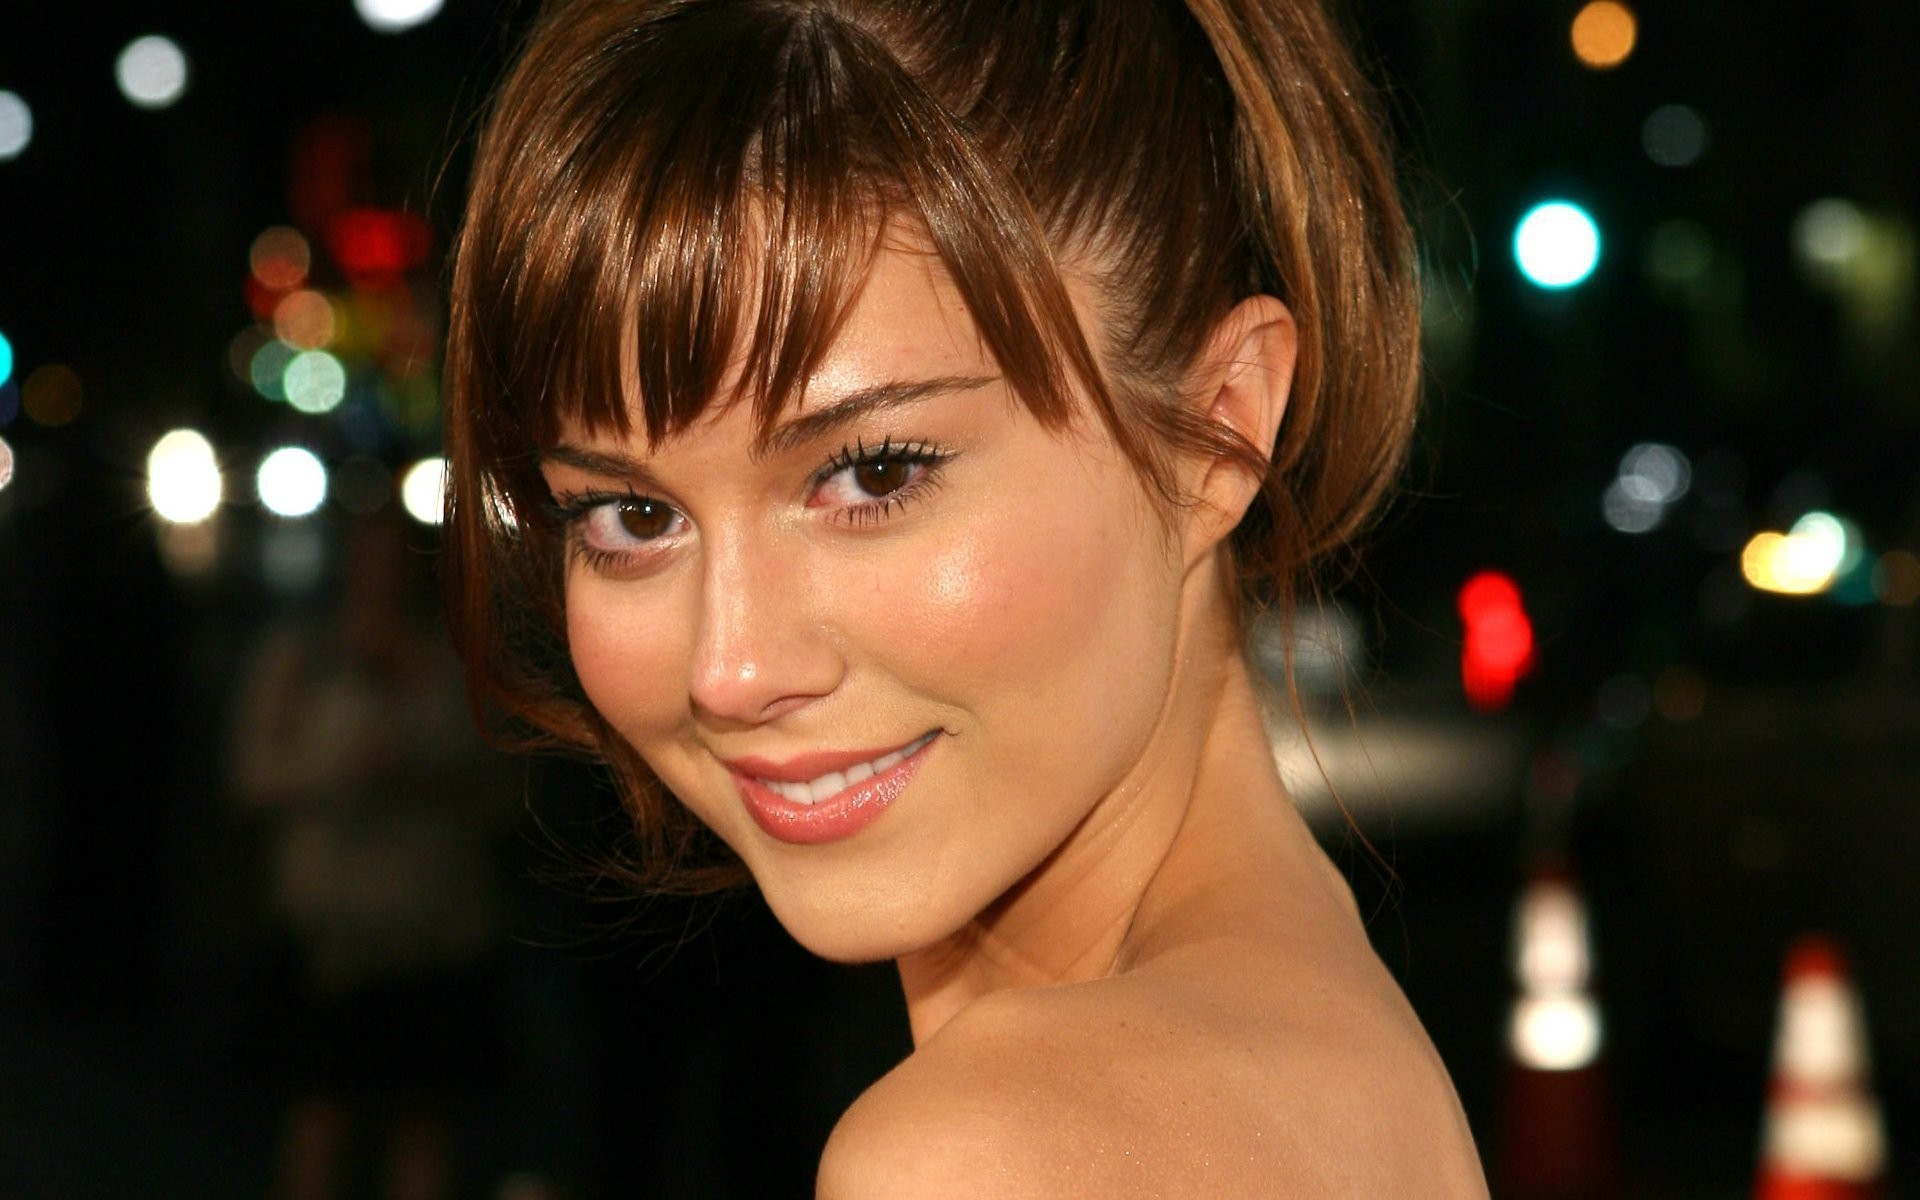 Mary Elizabeth Winstead Background